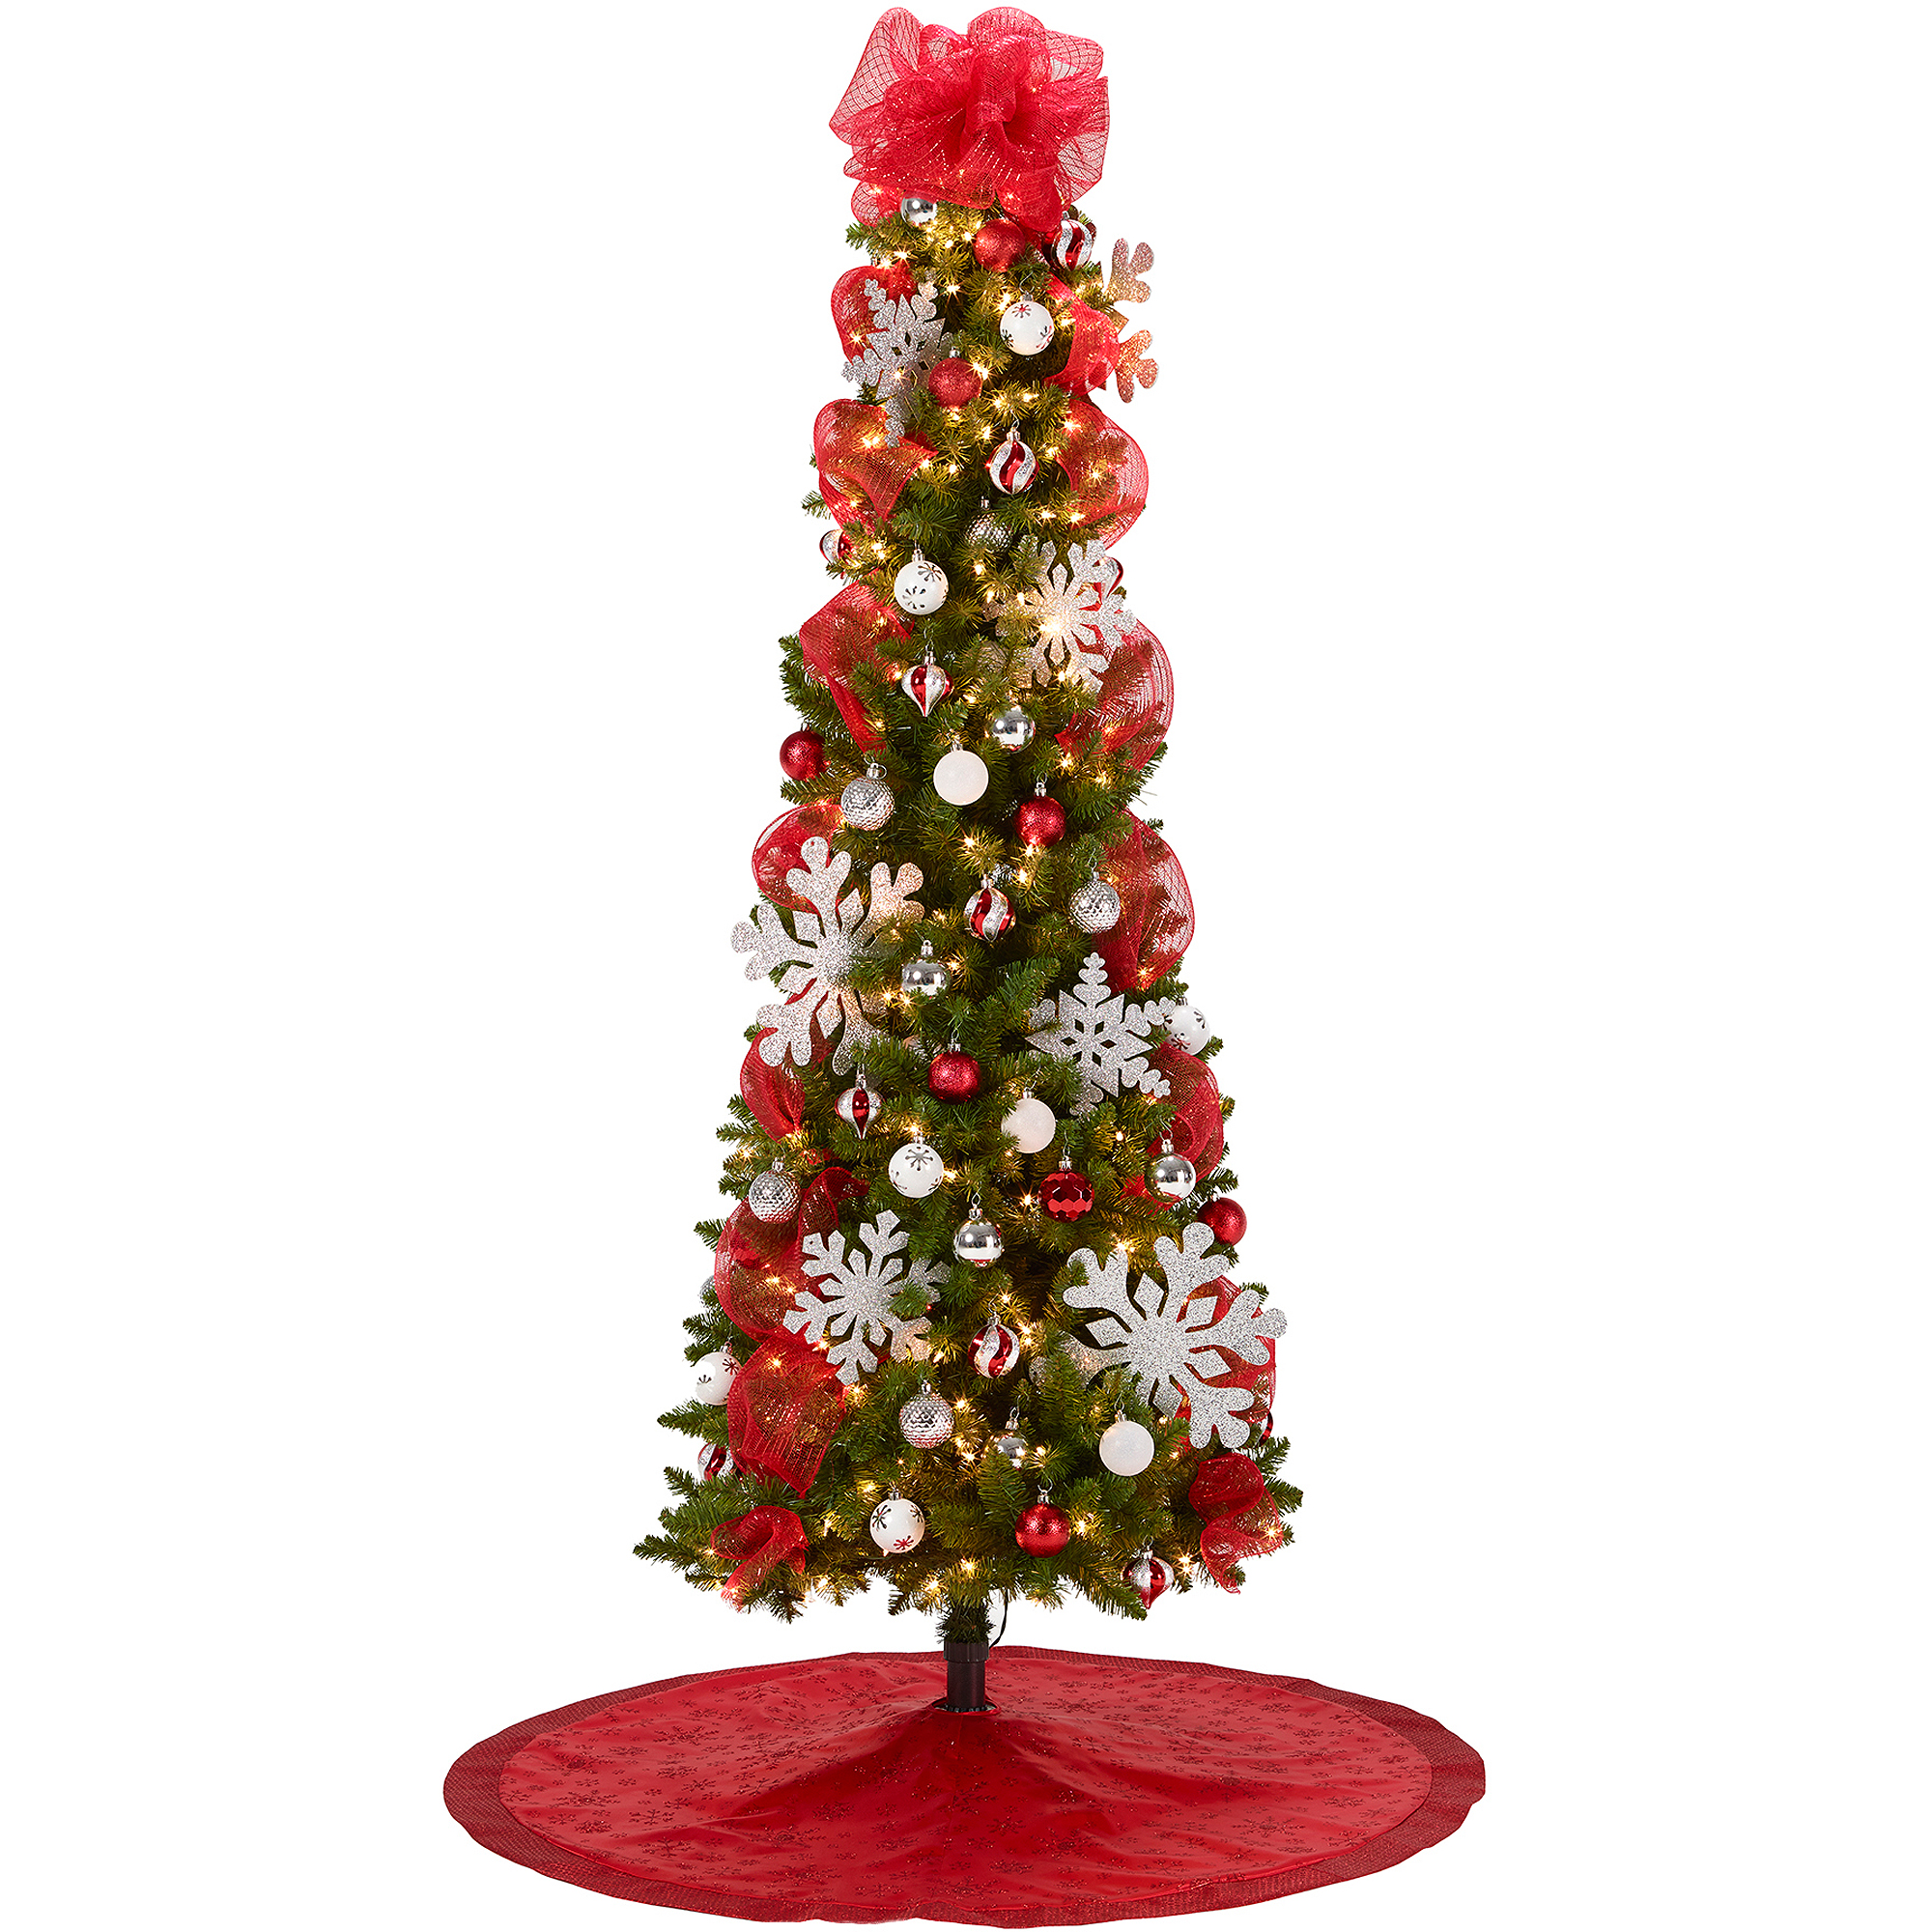 7' Pre-Lit Brinkley Pine Christmas Tree with Red and Silver Decoration Kit